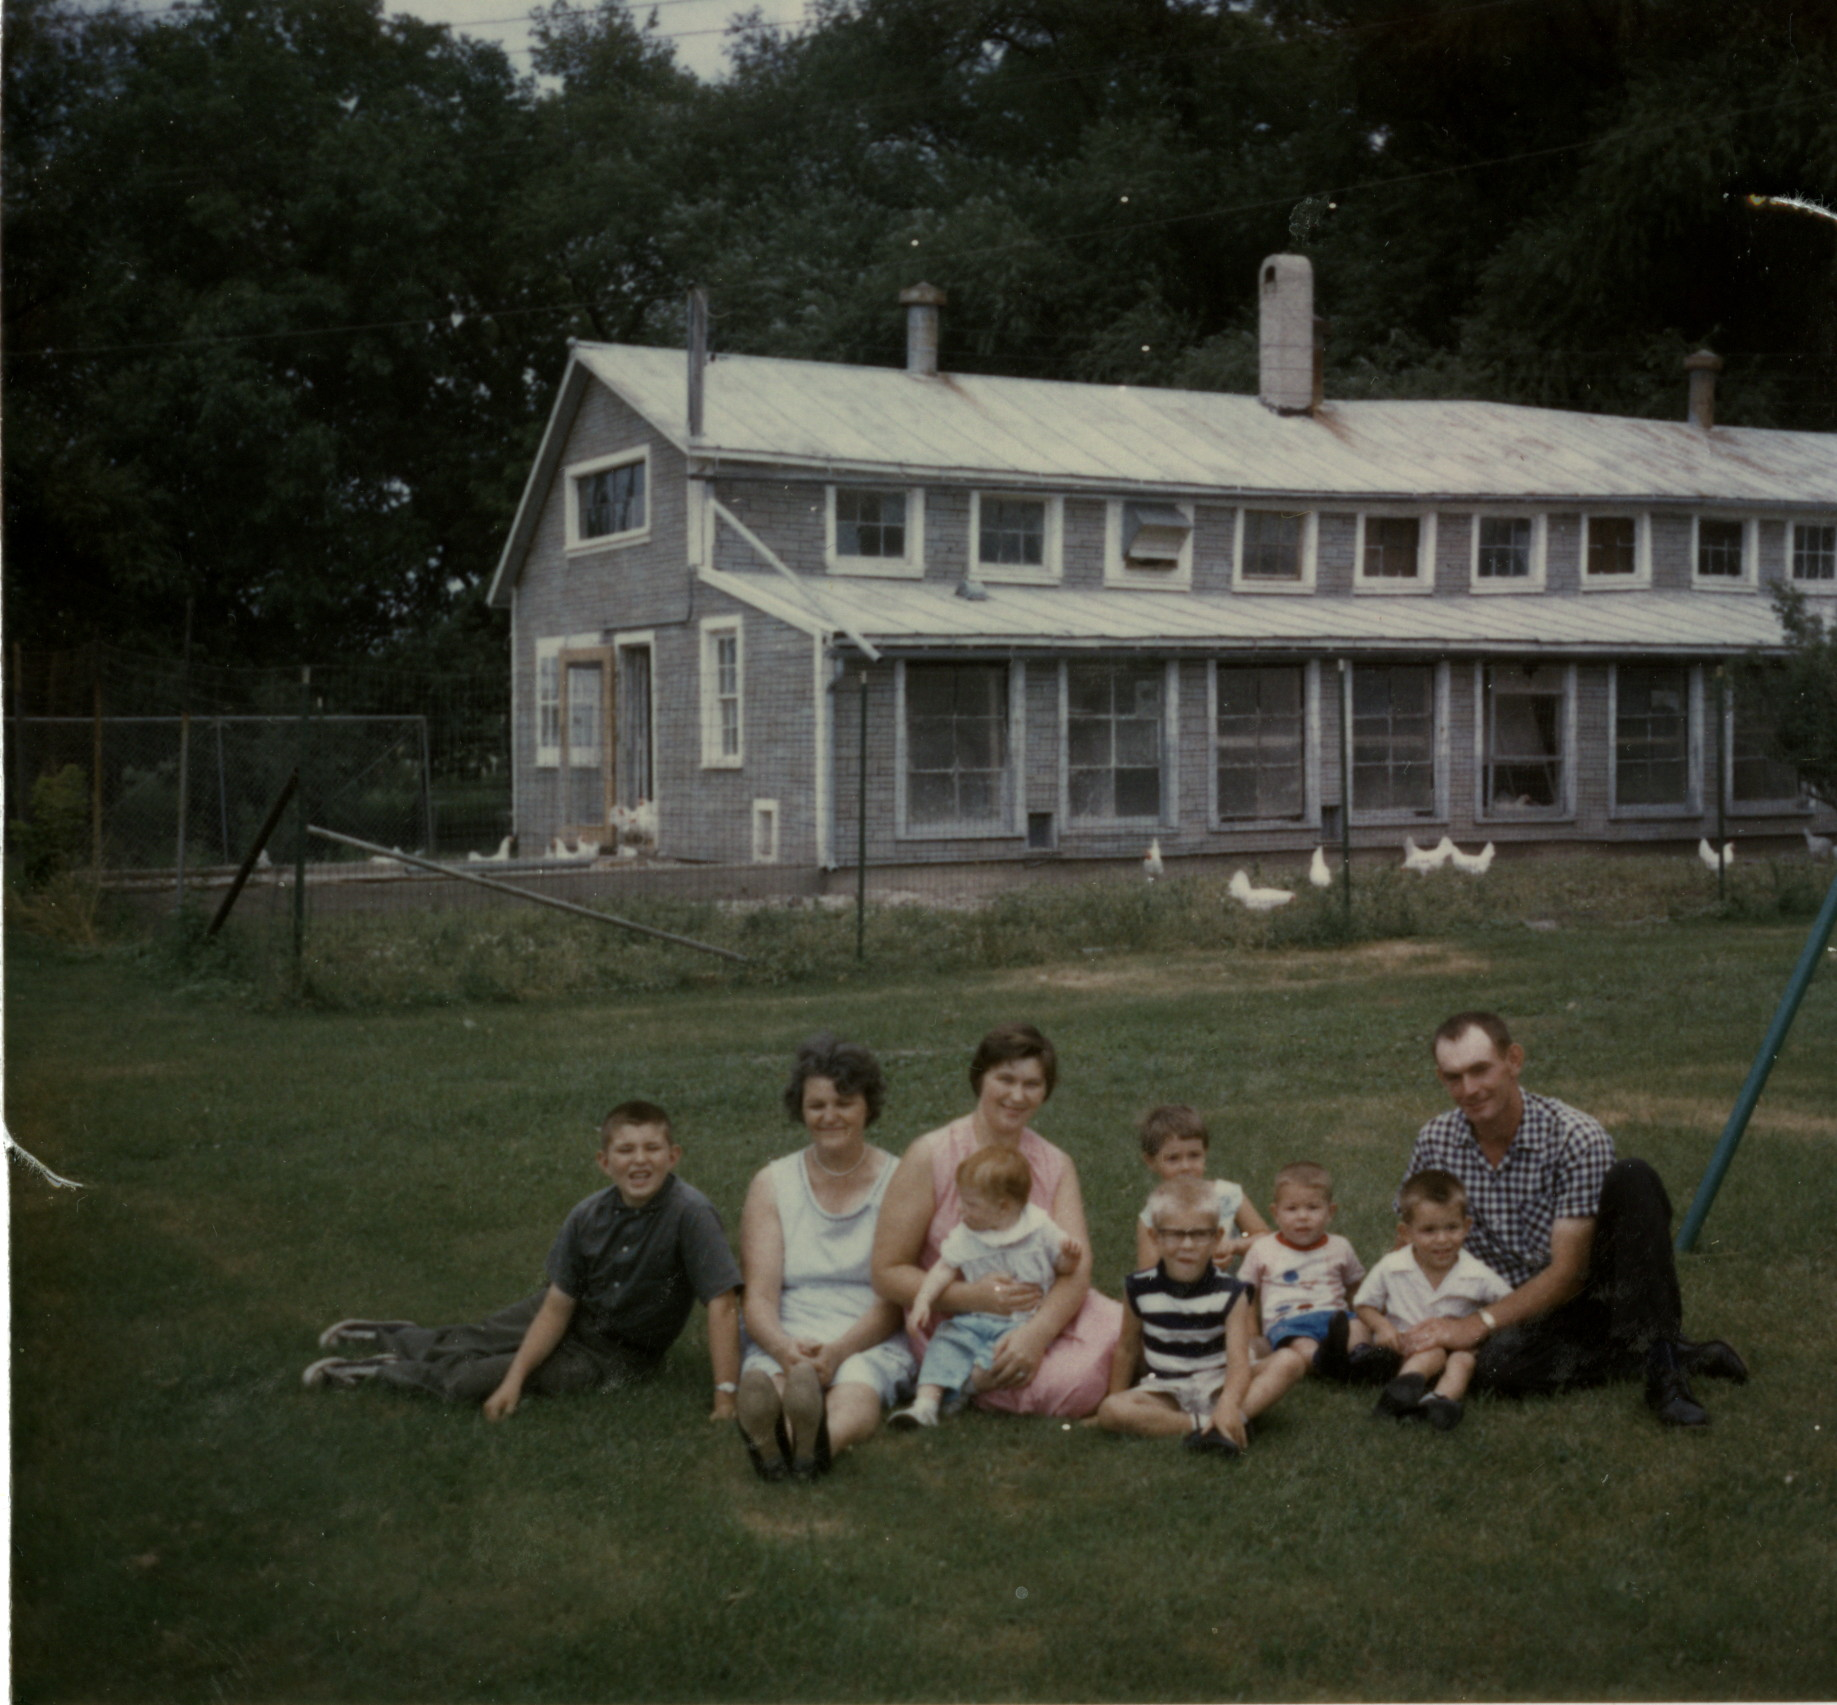 Alex and Marlene Kraus pose with their family on St. Joseph Springs Farm, c. 1967.  Alex and his brother Marvin managed the farm in the 1960s.